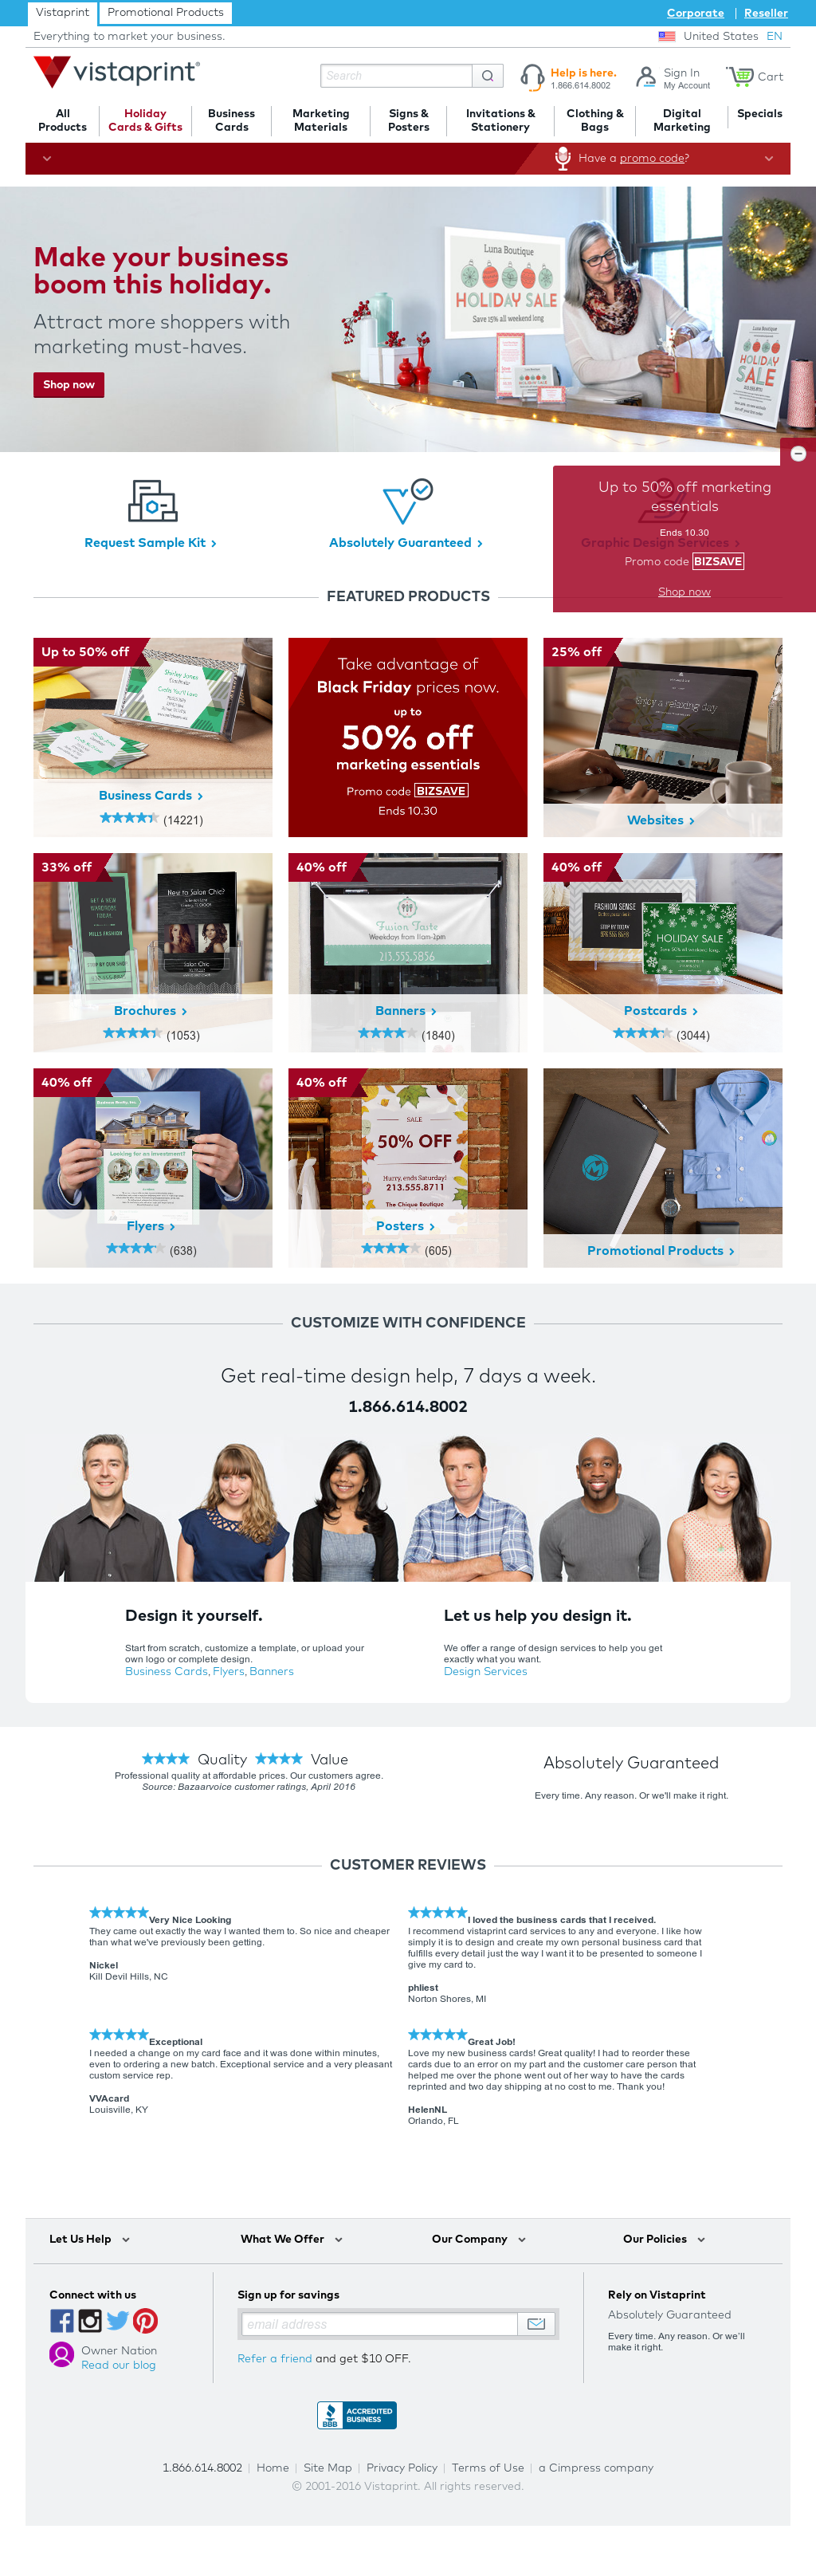 Vistaprint Competitors, Revenue and Employees - Owler Company Profile